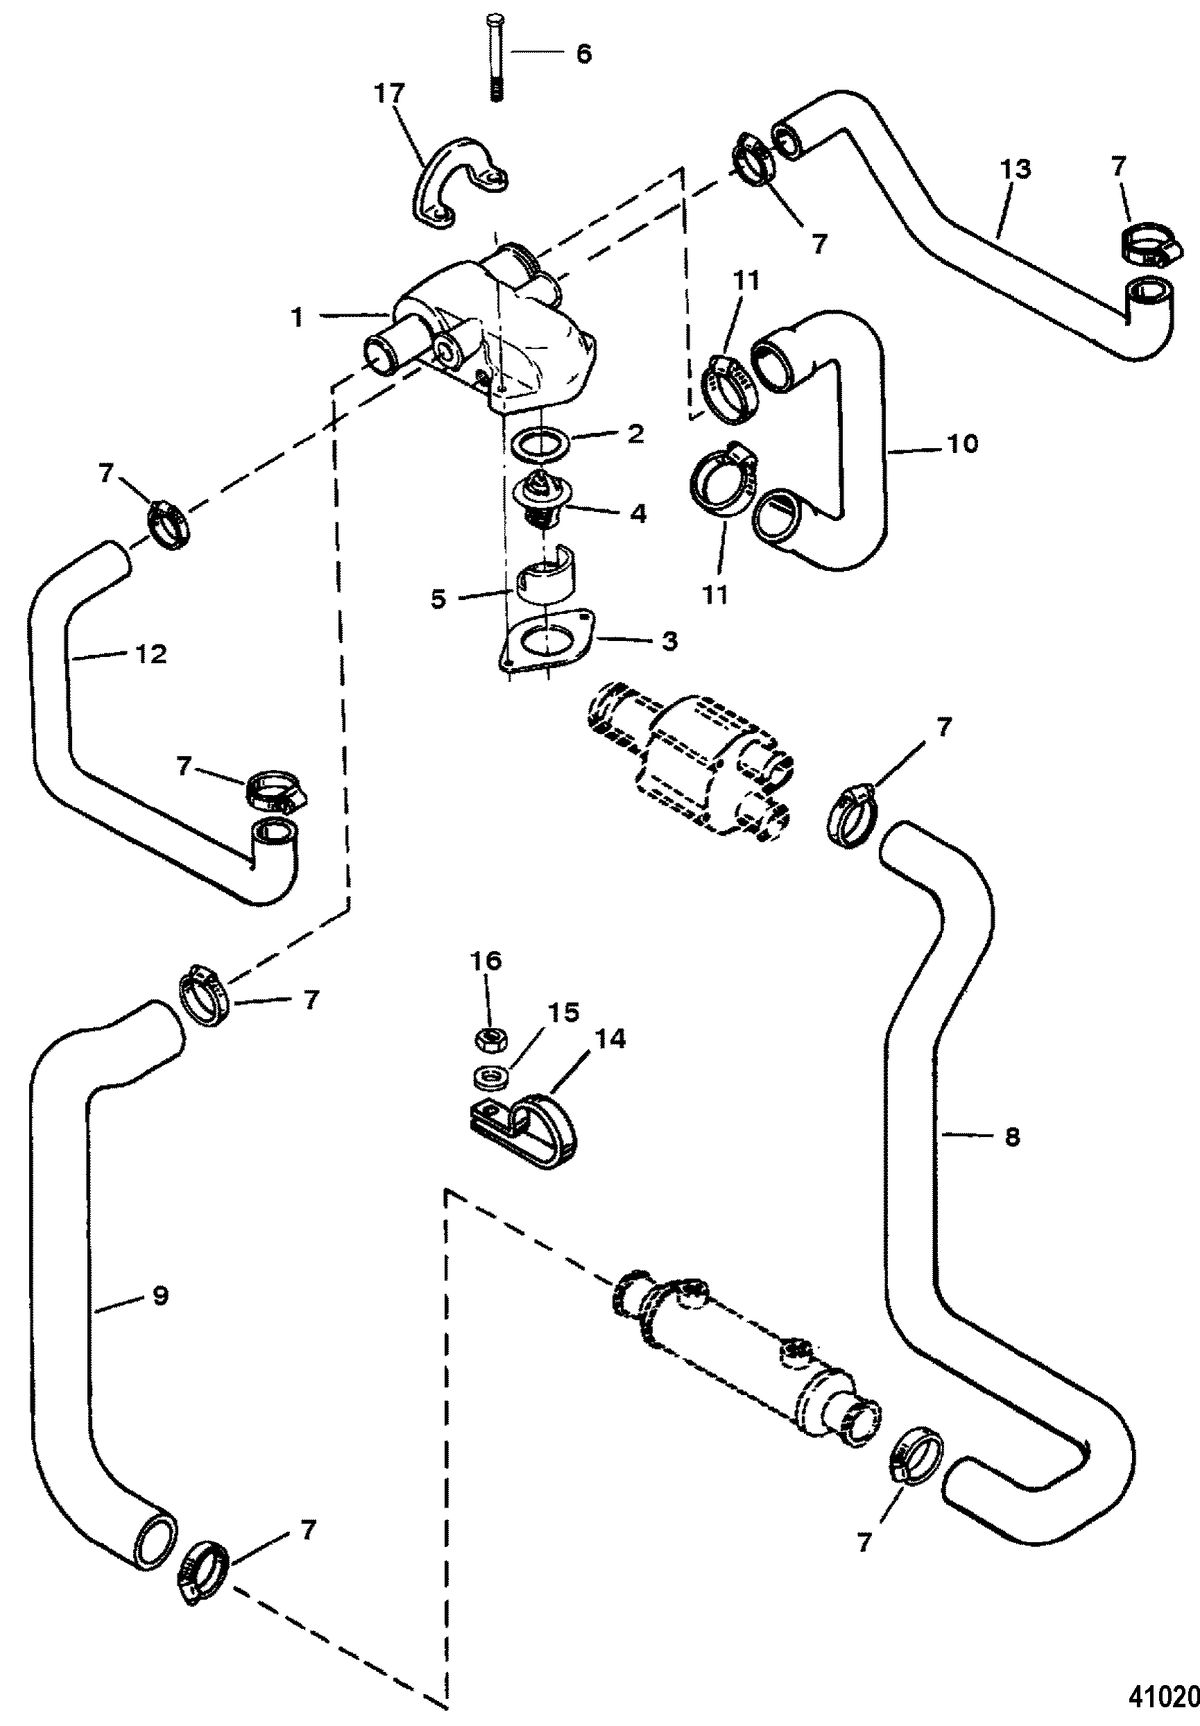 MERCRUISER 5.7L COMPETITION SKI ENGINE Thermostat Housing(Standard Cooling) Design III